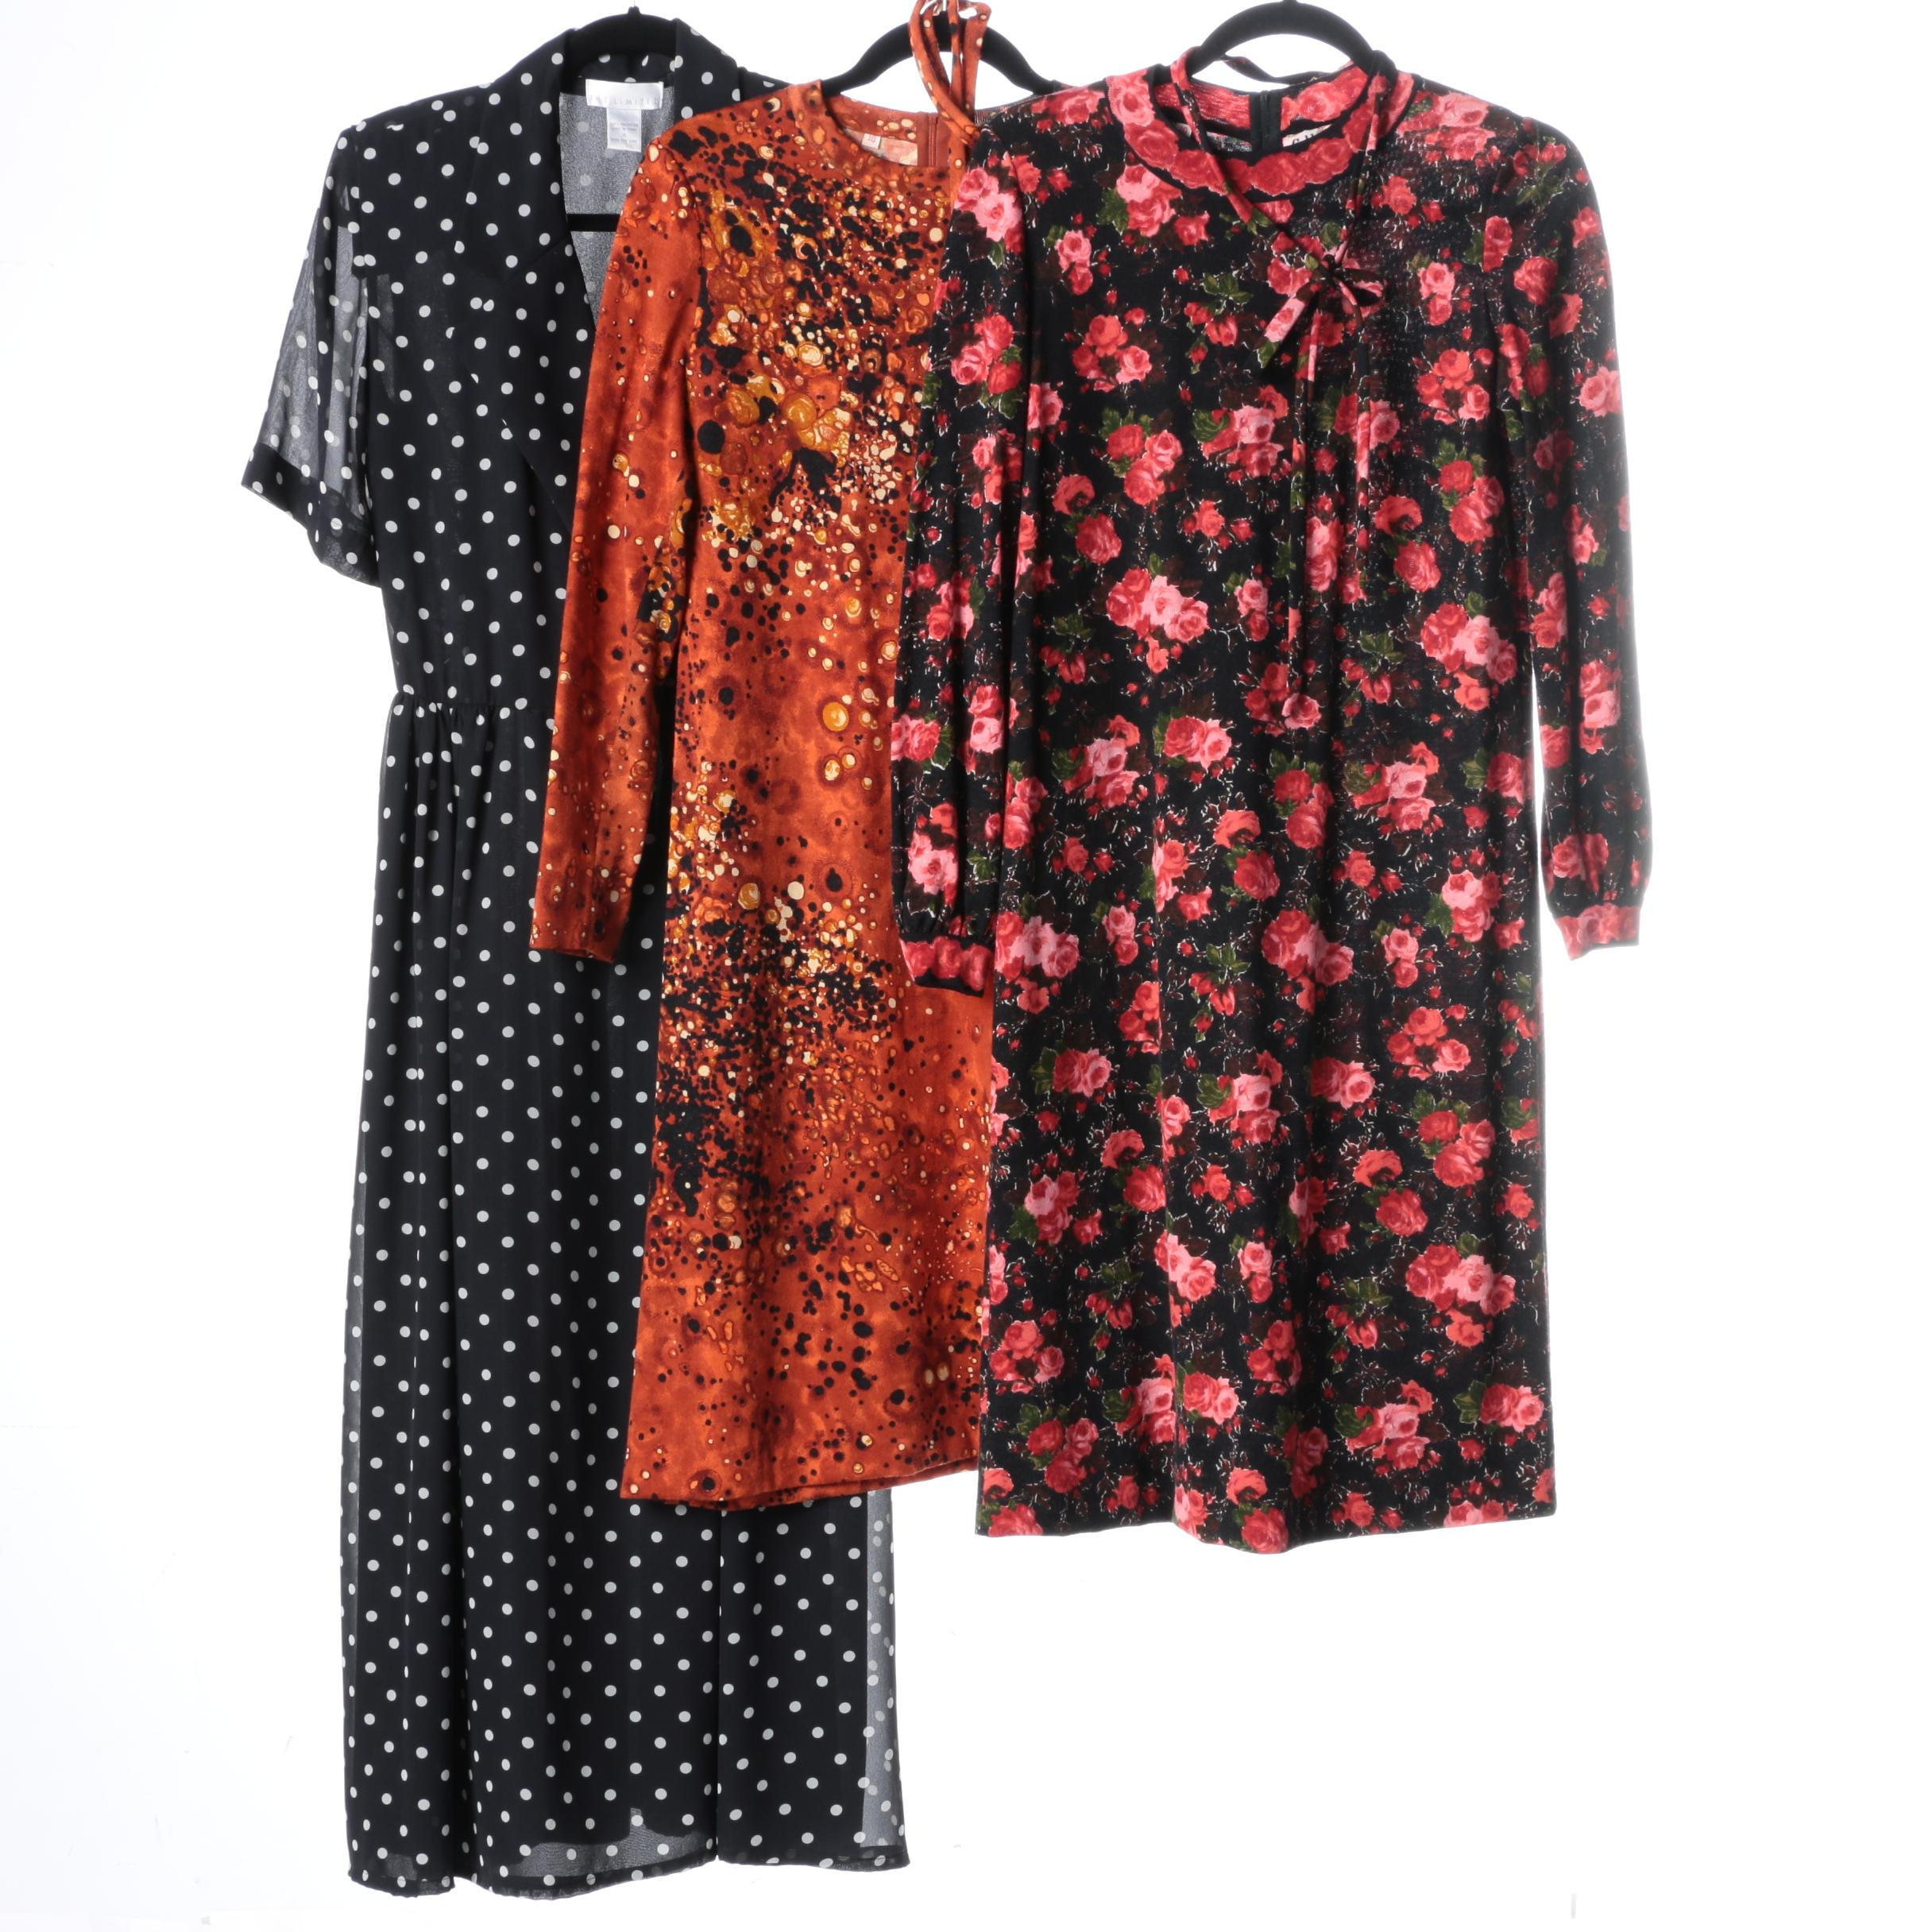 Women's Printed Dresses Including Goldworm and The Limited